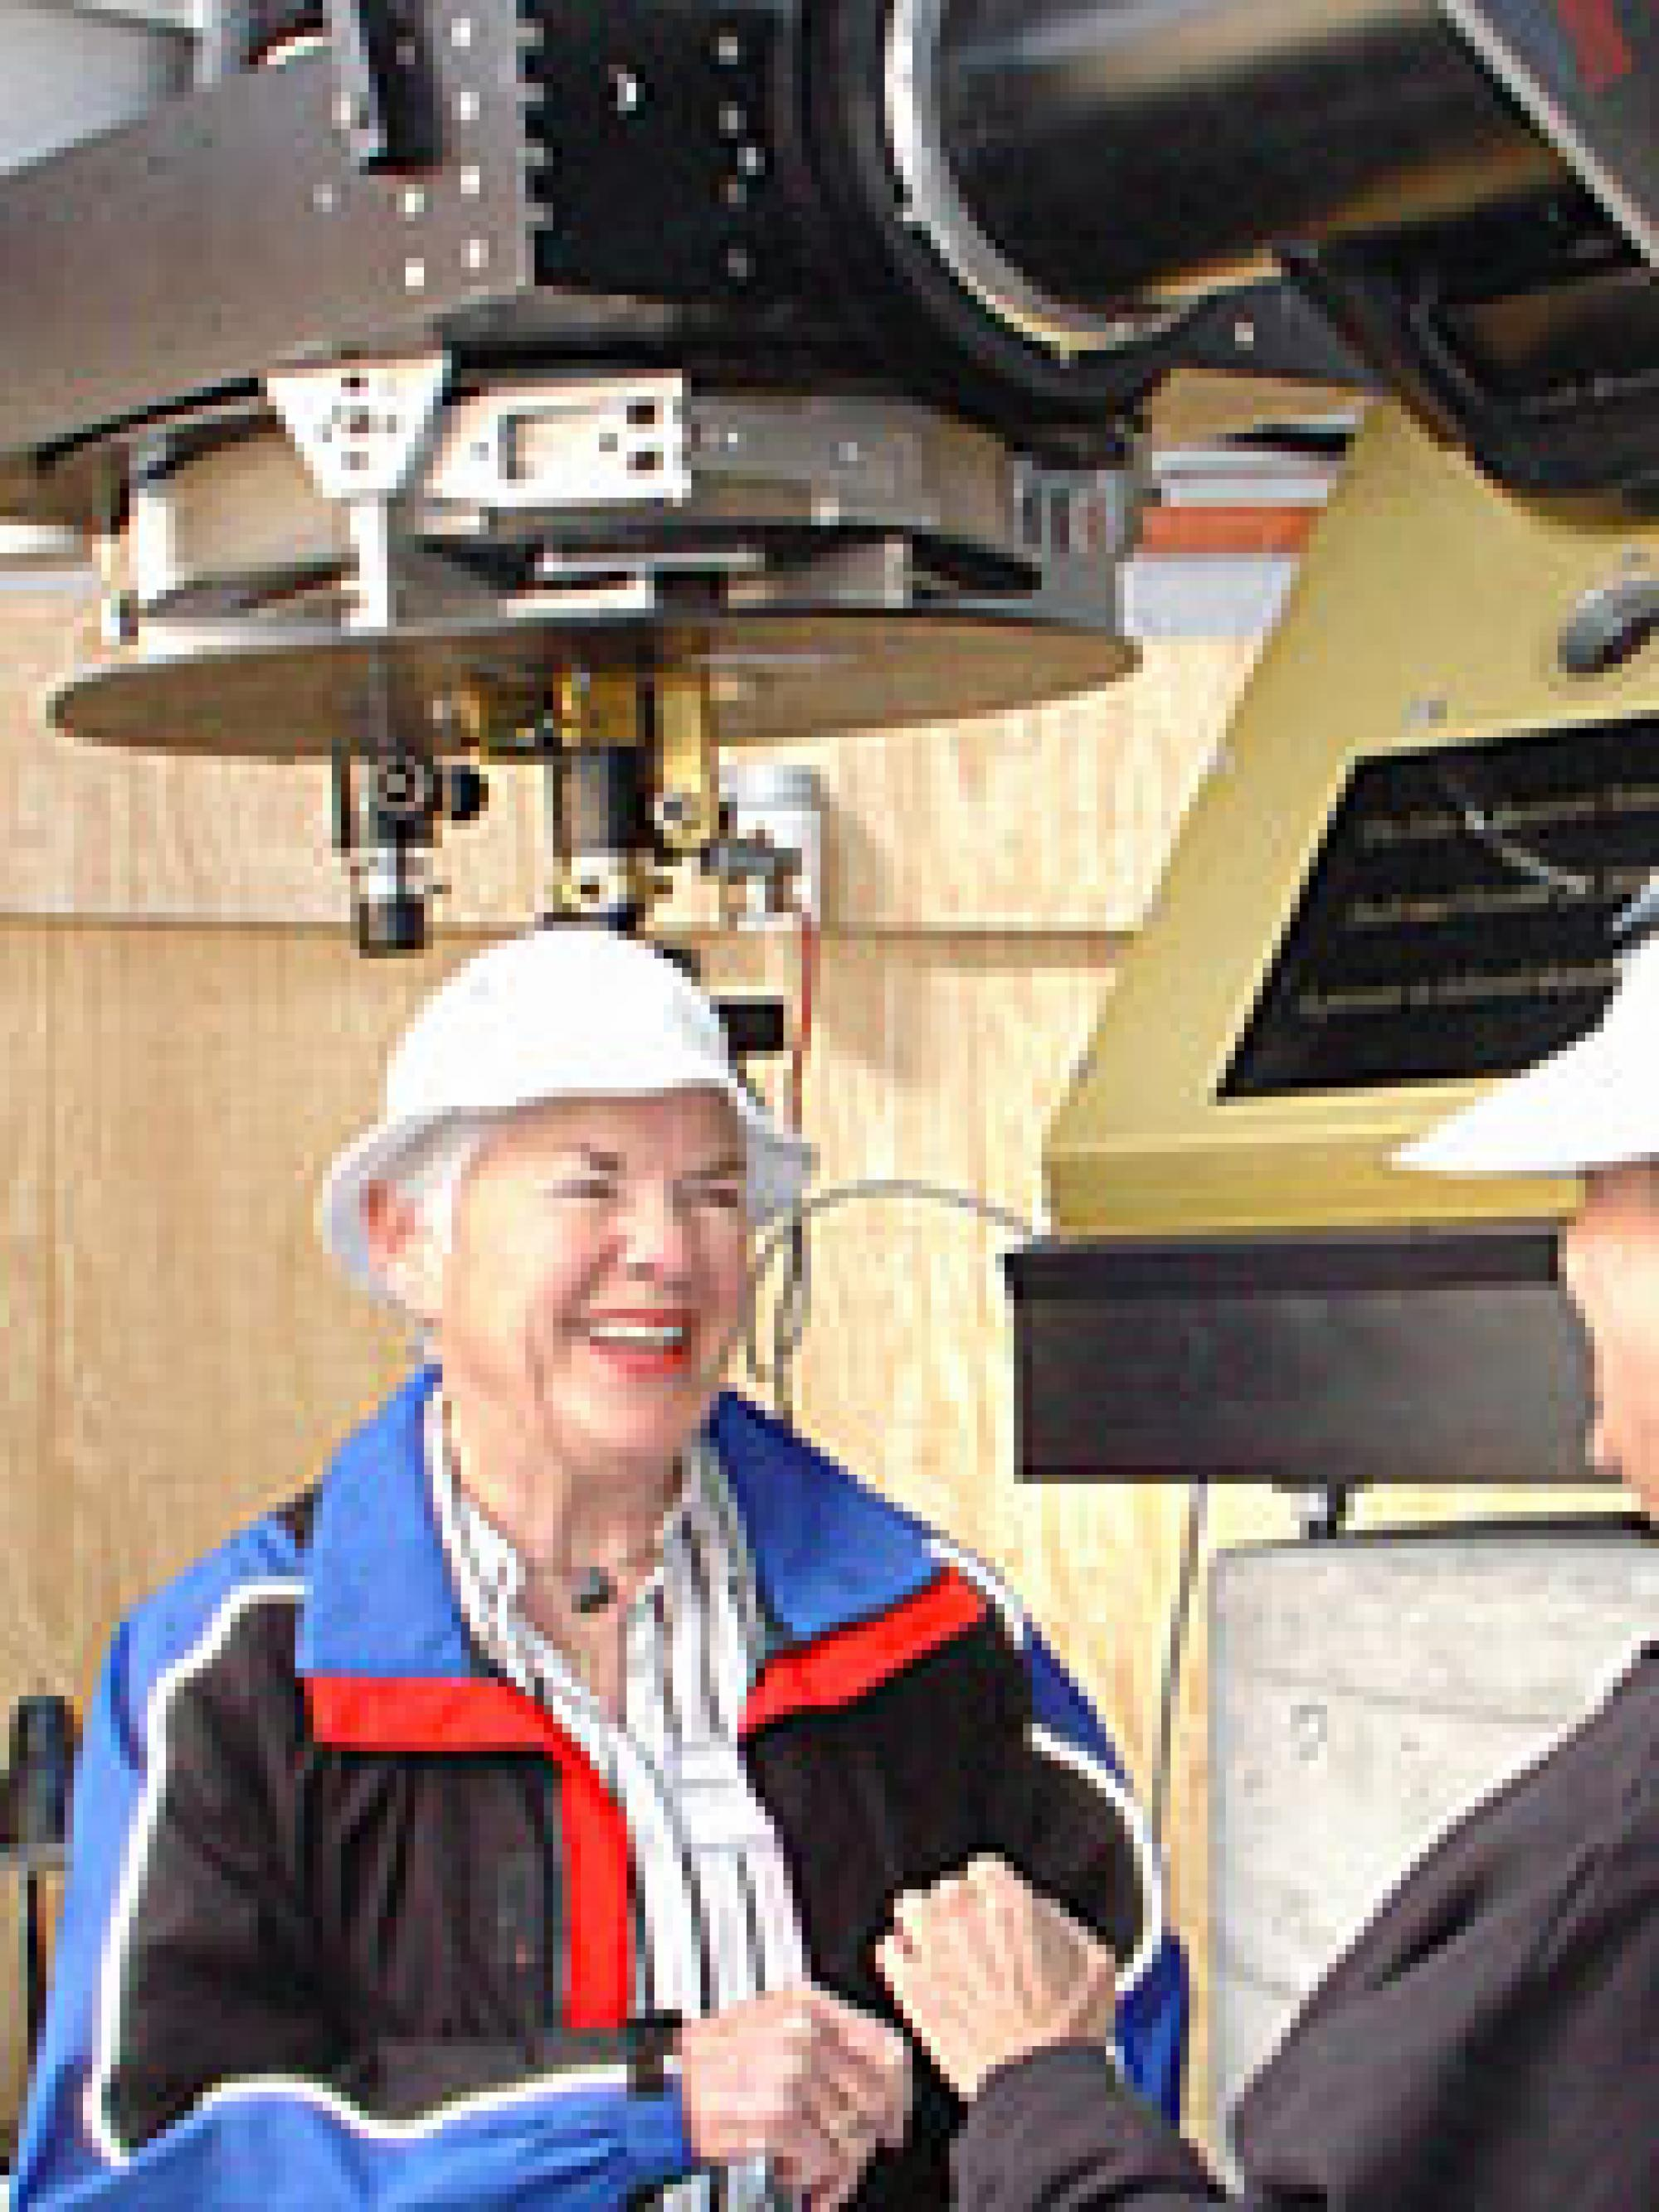 Barbara Jamieson shares a happy moment with Tucson friend Valerie Goff at the John Jamieson Telescope dedication.